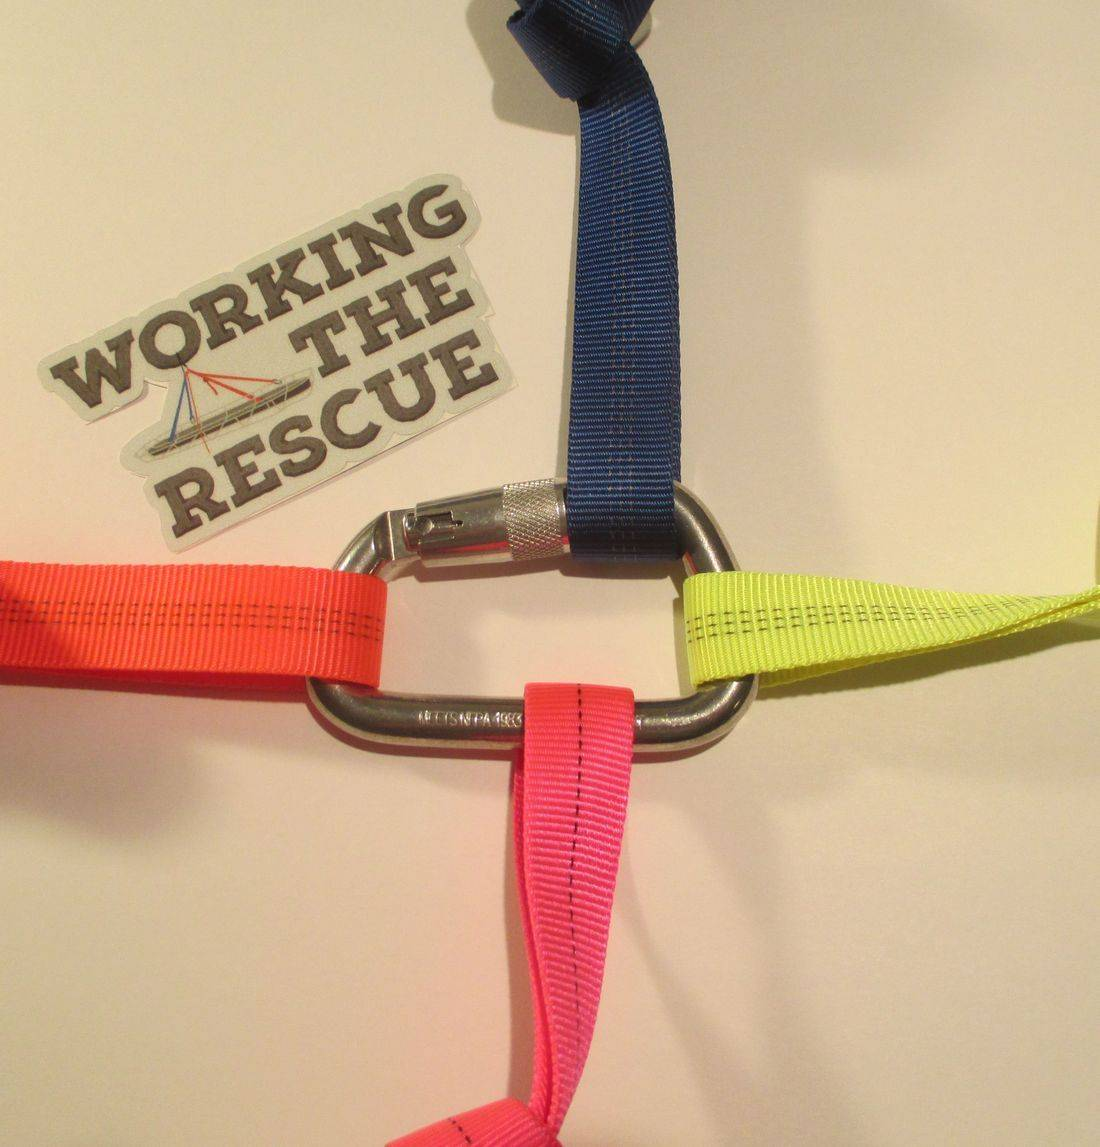 carabiners rope rescue rigging